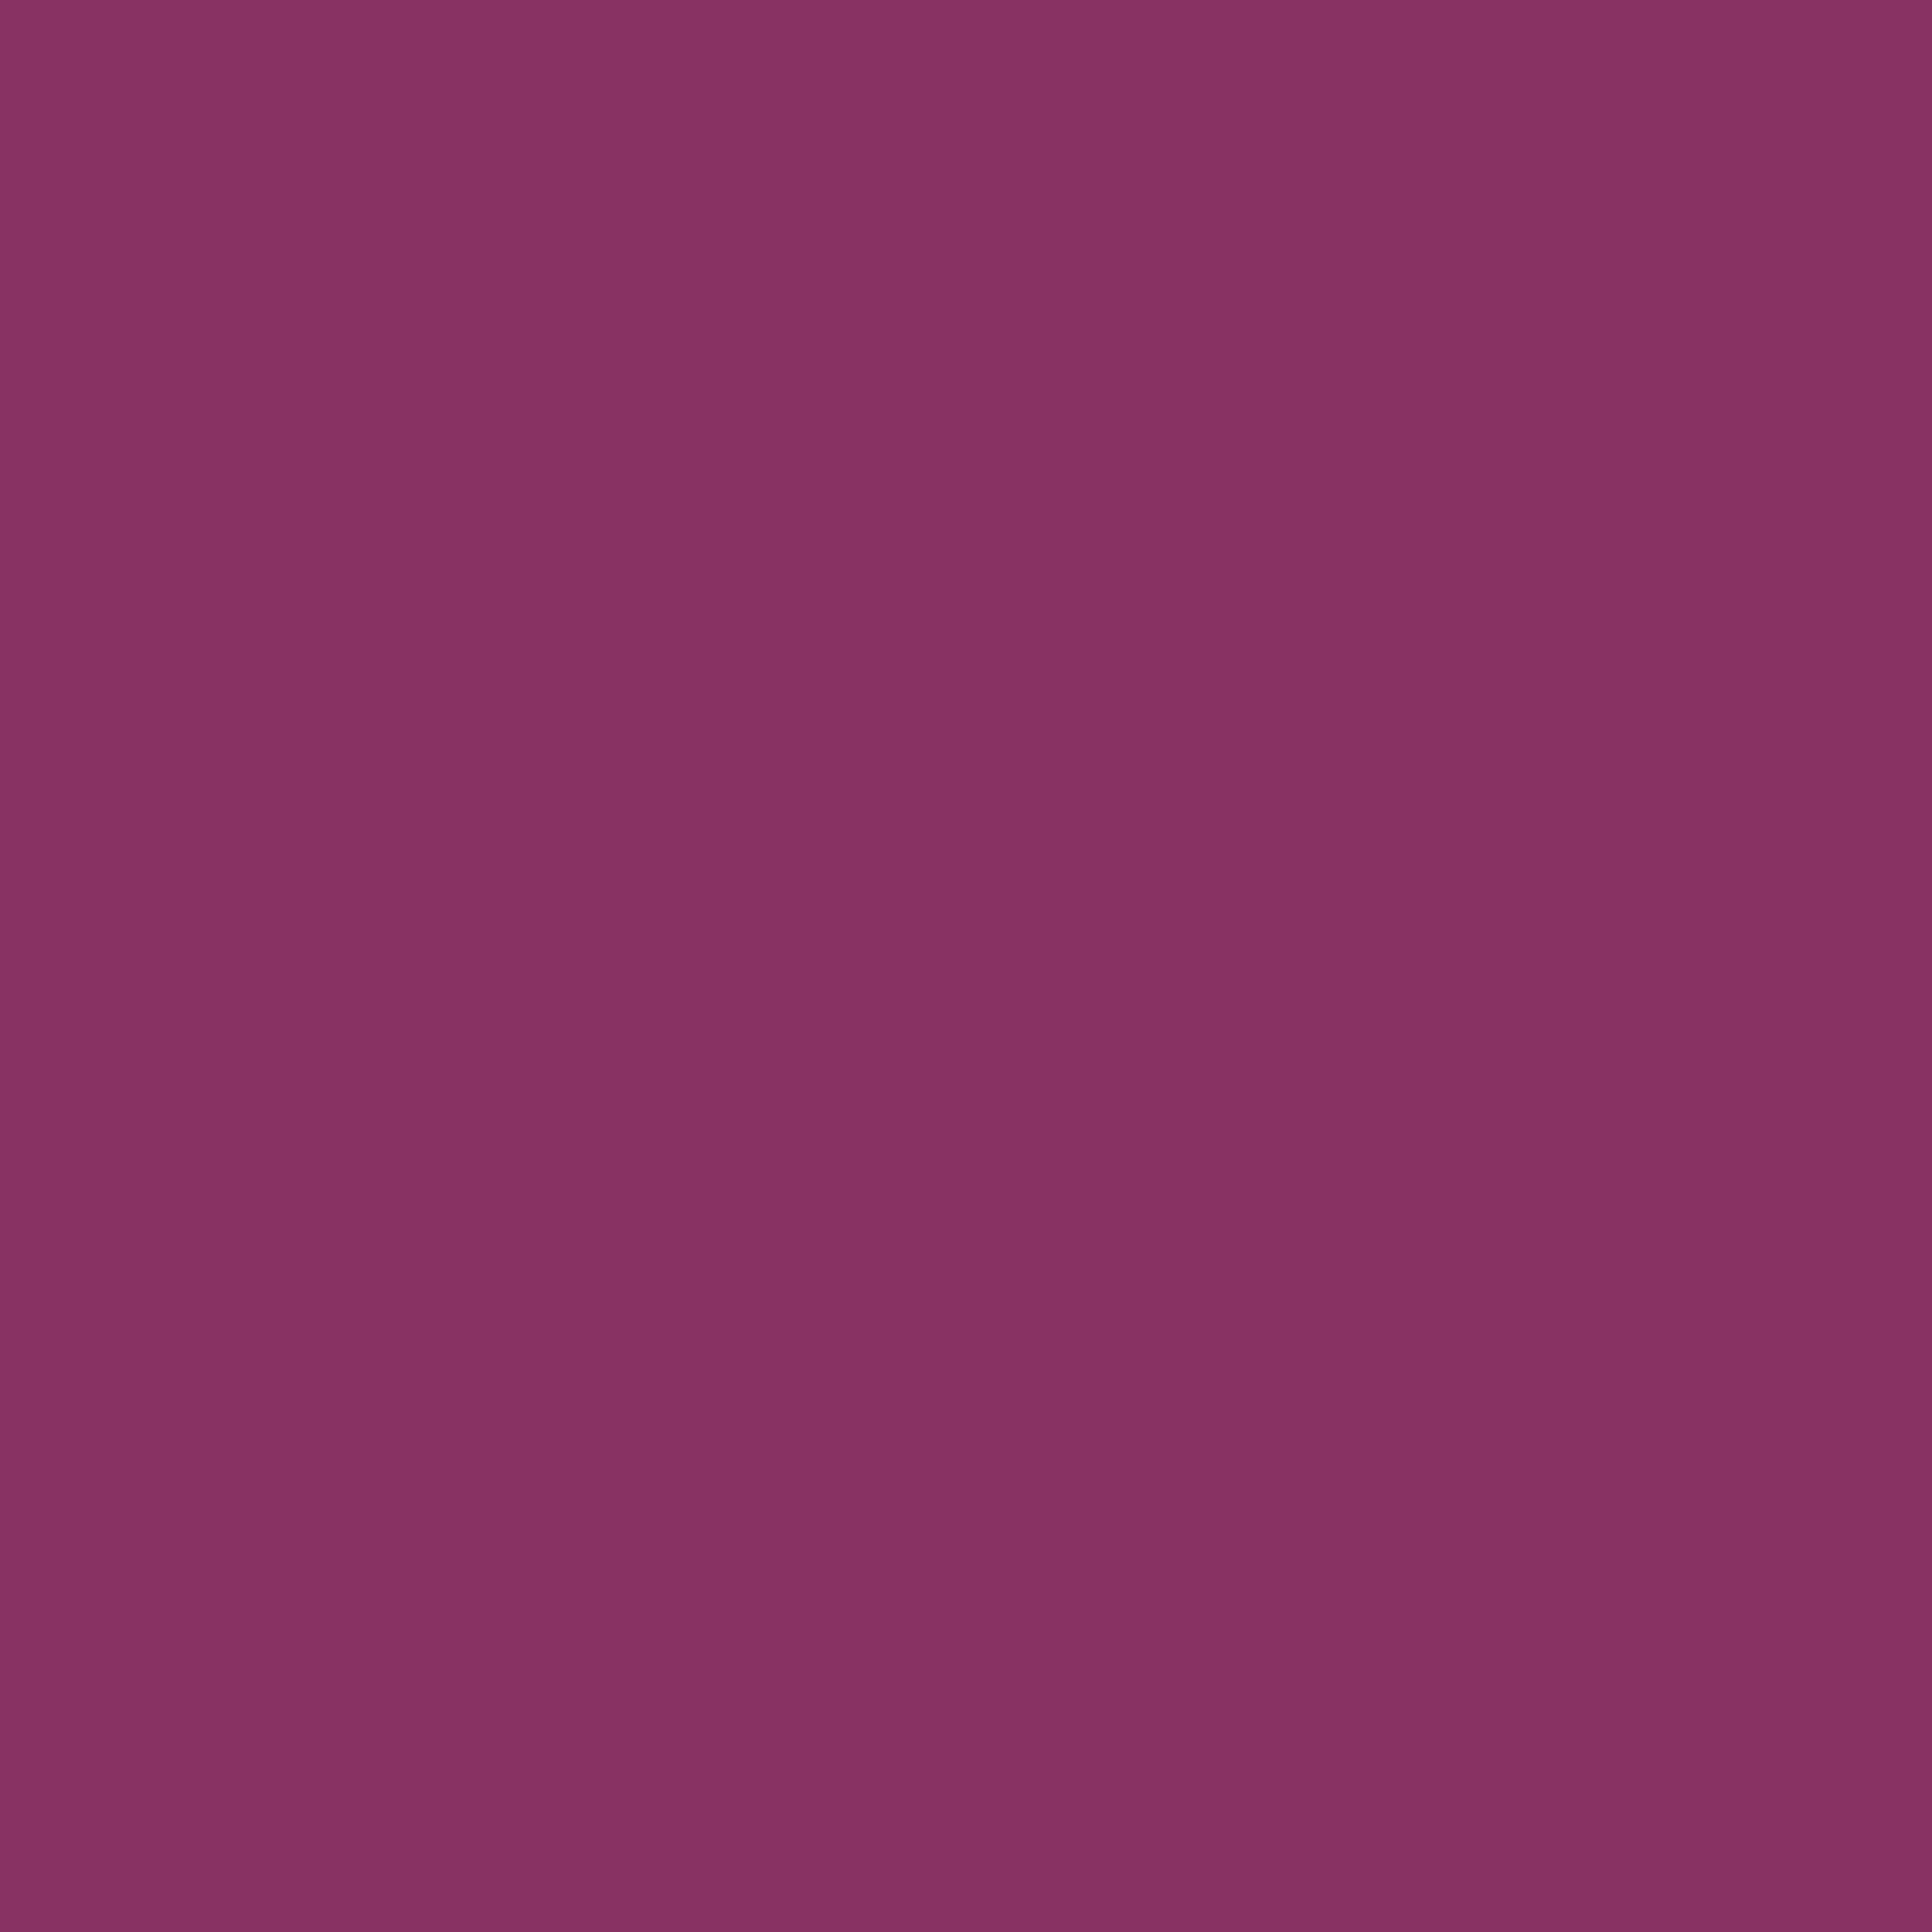 2048x2048 Boysenberry Solid Color Background